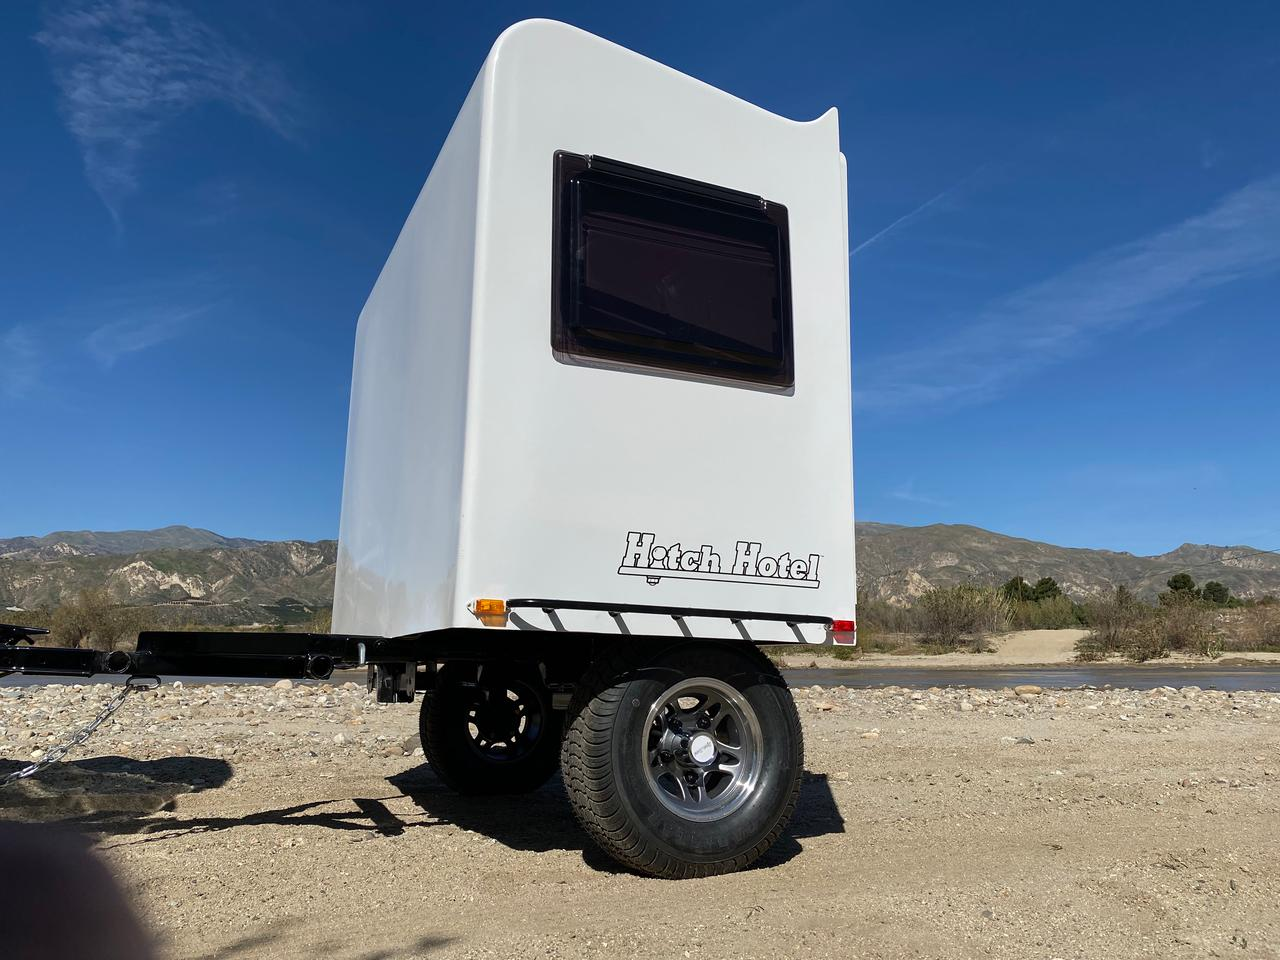 Hitch Hotel looks to accommodate a new style of car camper with the Traveler trailer